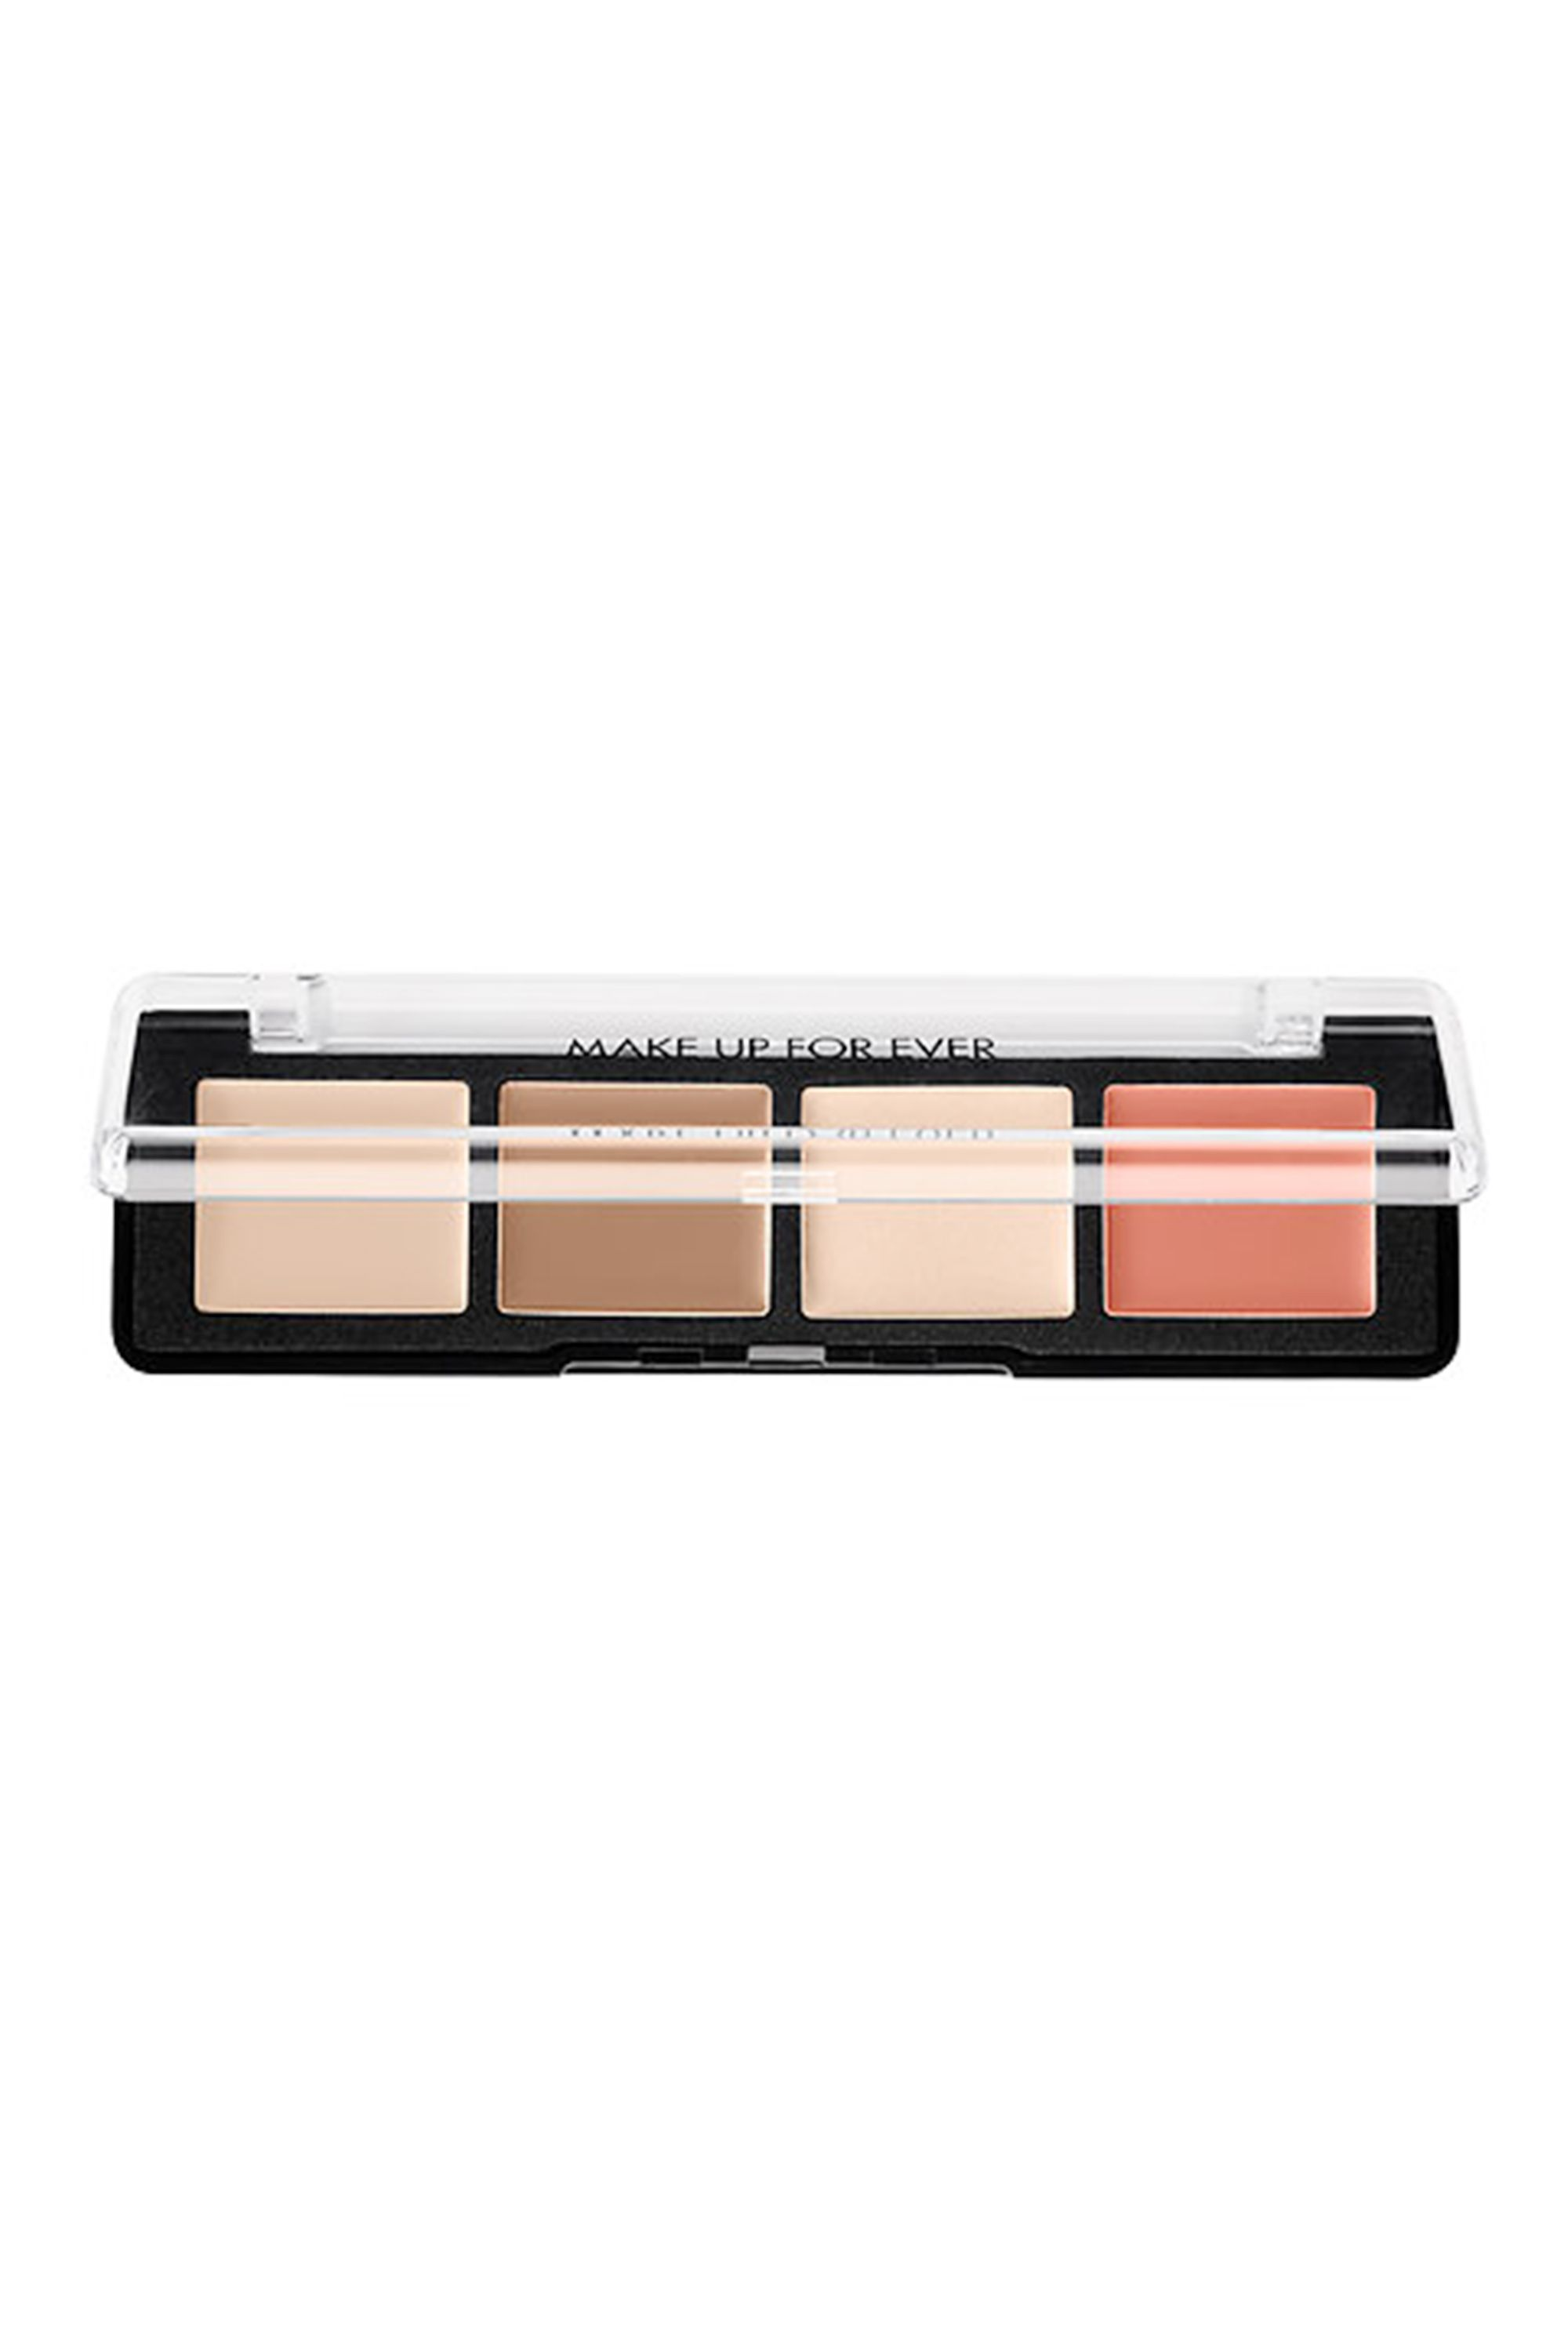 "<p>For an all-in-one product, makeup artist Jaleesa Jaikaran–she's worked for everyone from Jeremy Scott to Zac Posen–always reaches for Make Up For Ever's Pro Sculpting Palette. ""It's versatile and blends seamlessly into the skin. It's a full look in one palette and it has a color for every skin tone, you can contour, color correct and highlight all in one.""</p><p>Makeup Forever Pro Sculpting Palette, $45, <u data-redactor-tag=""u""><a href=""http://www.sephora.com/pro-sculpting-face-palette-P404776?keyword=Makeup%20Forever%E2%80%99s%20Pro%20Sculpting%20Palette&skuId=1779784&_requestid=58652"">Sephora.com</a></u></p>"